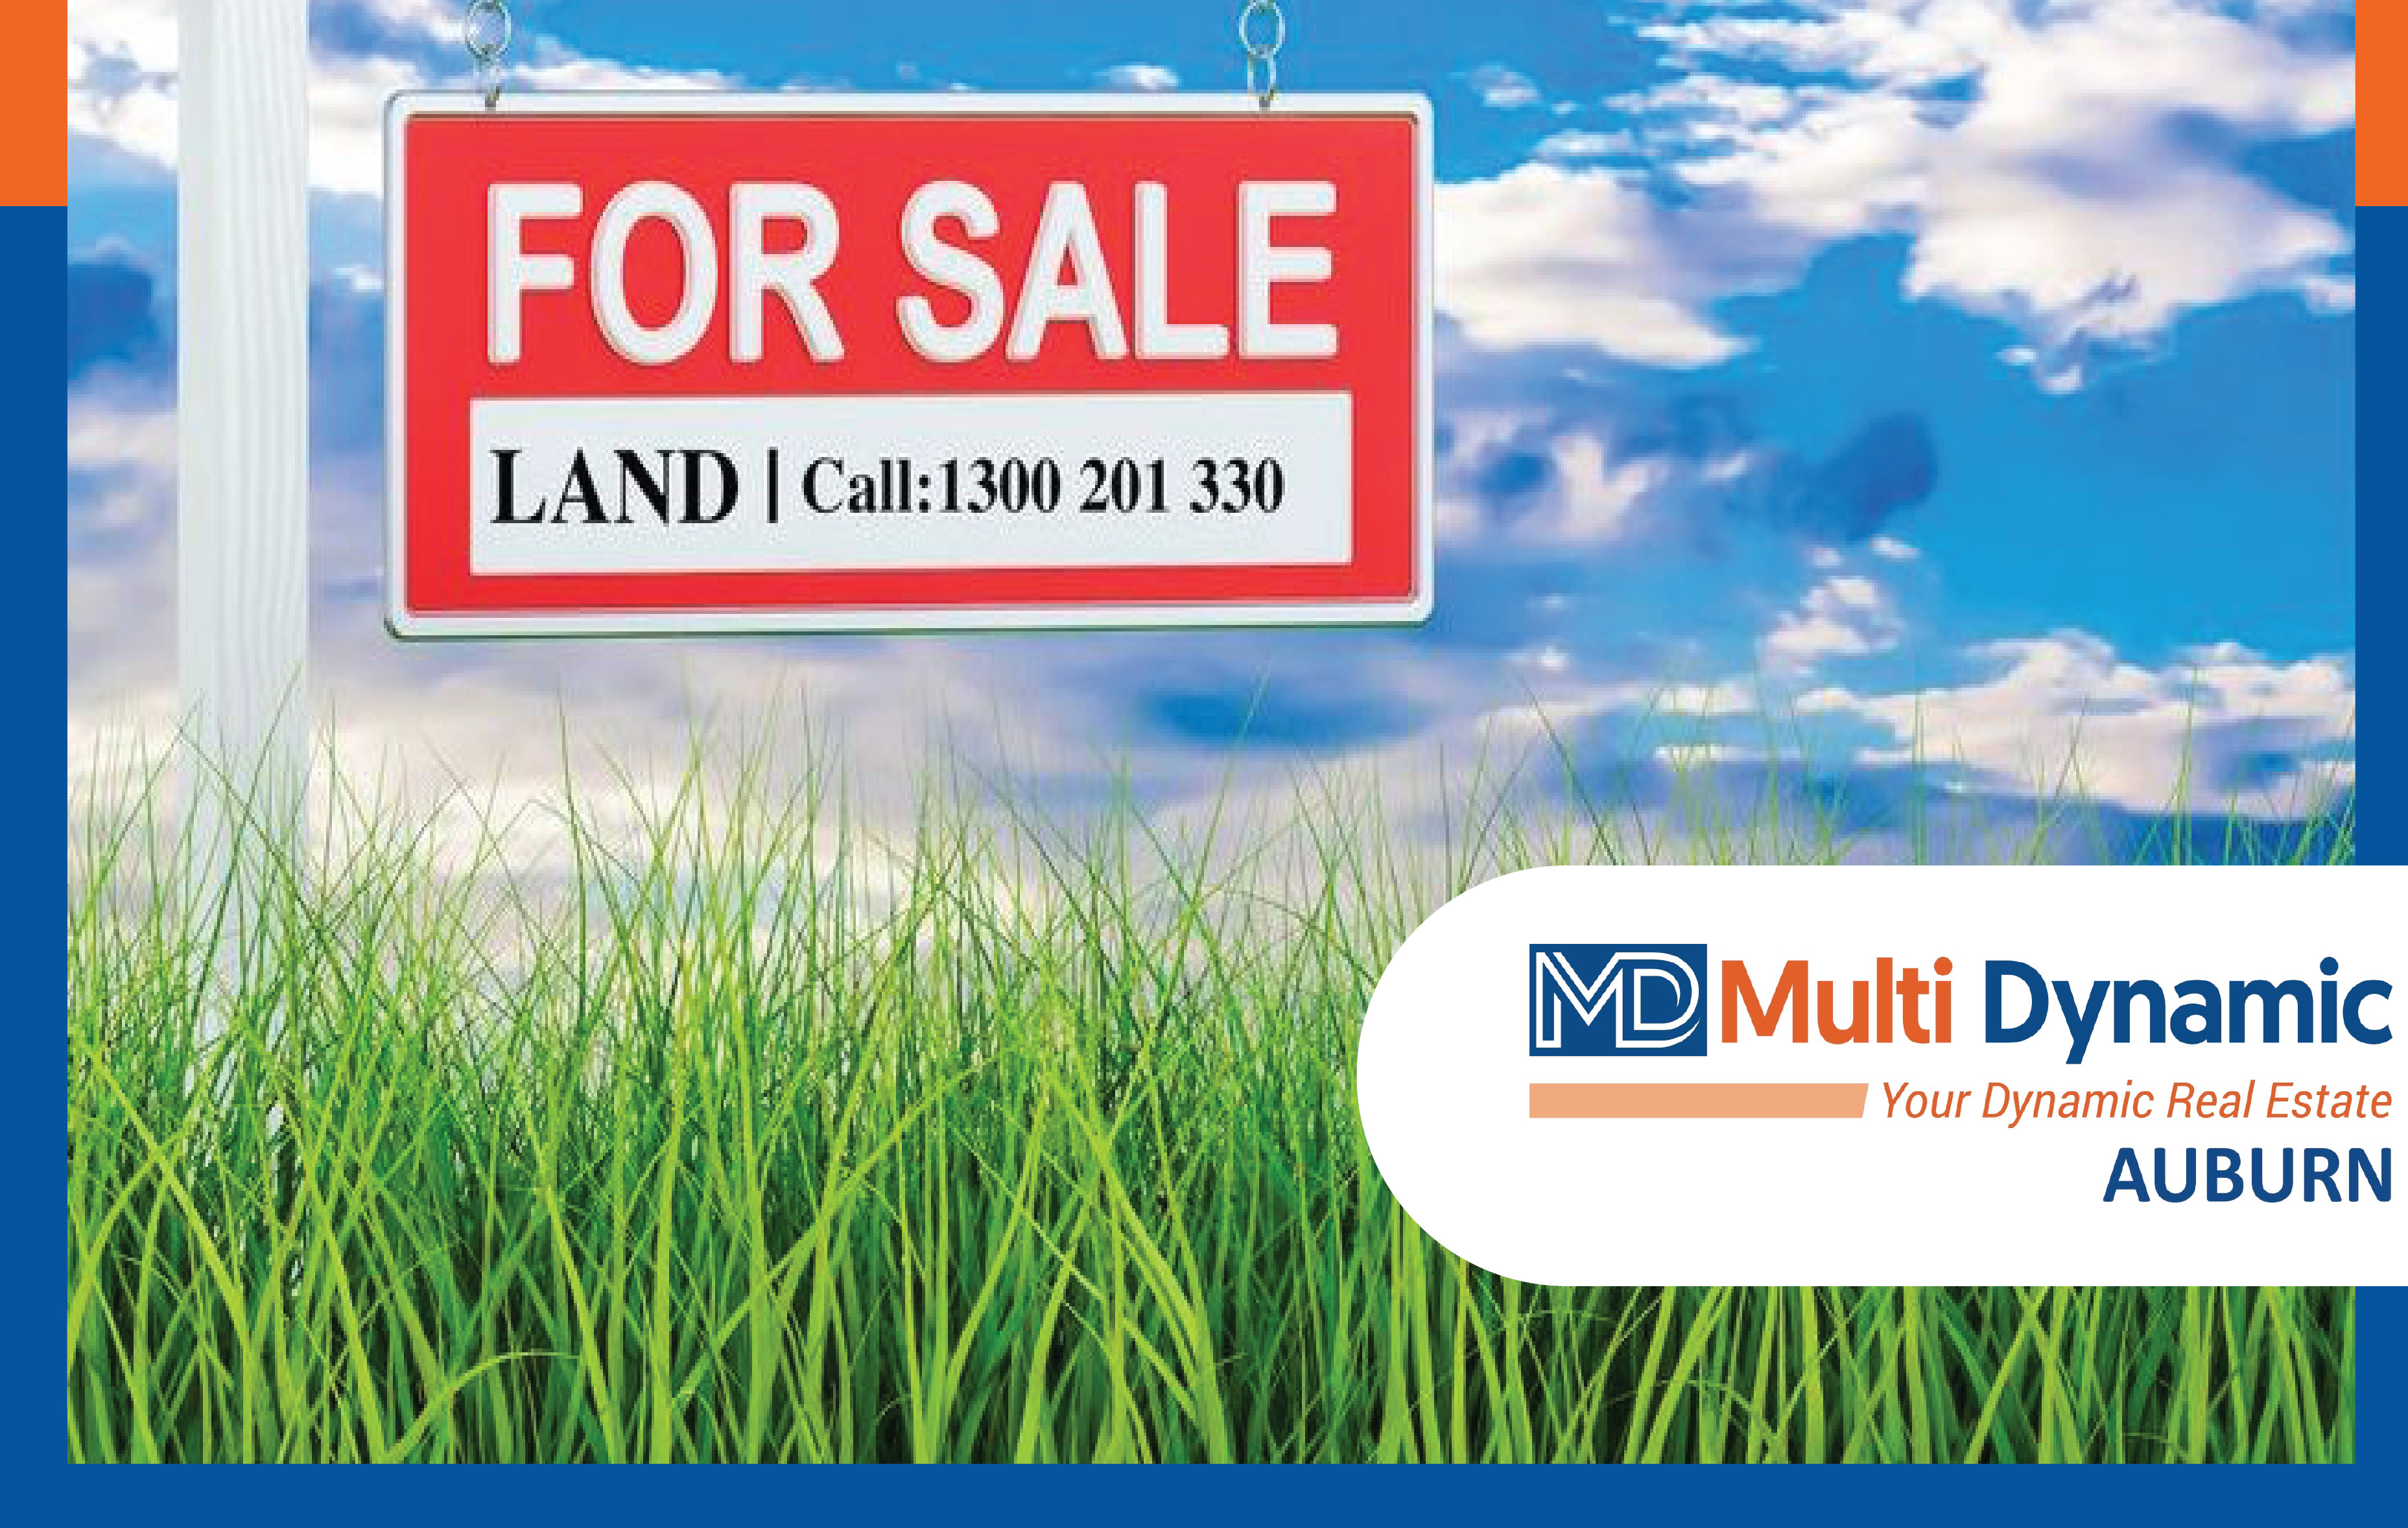 Land for sale in Cobbitty !! Call 1300 201 330